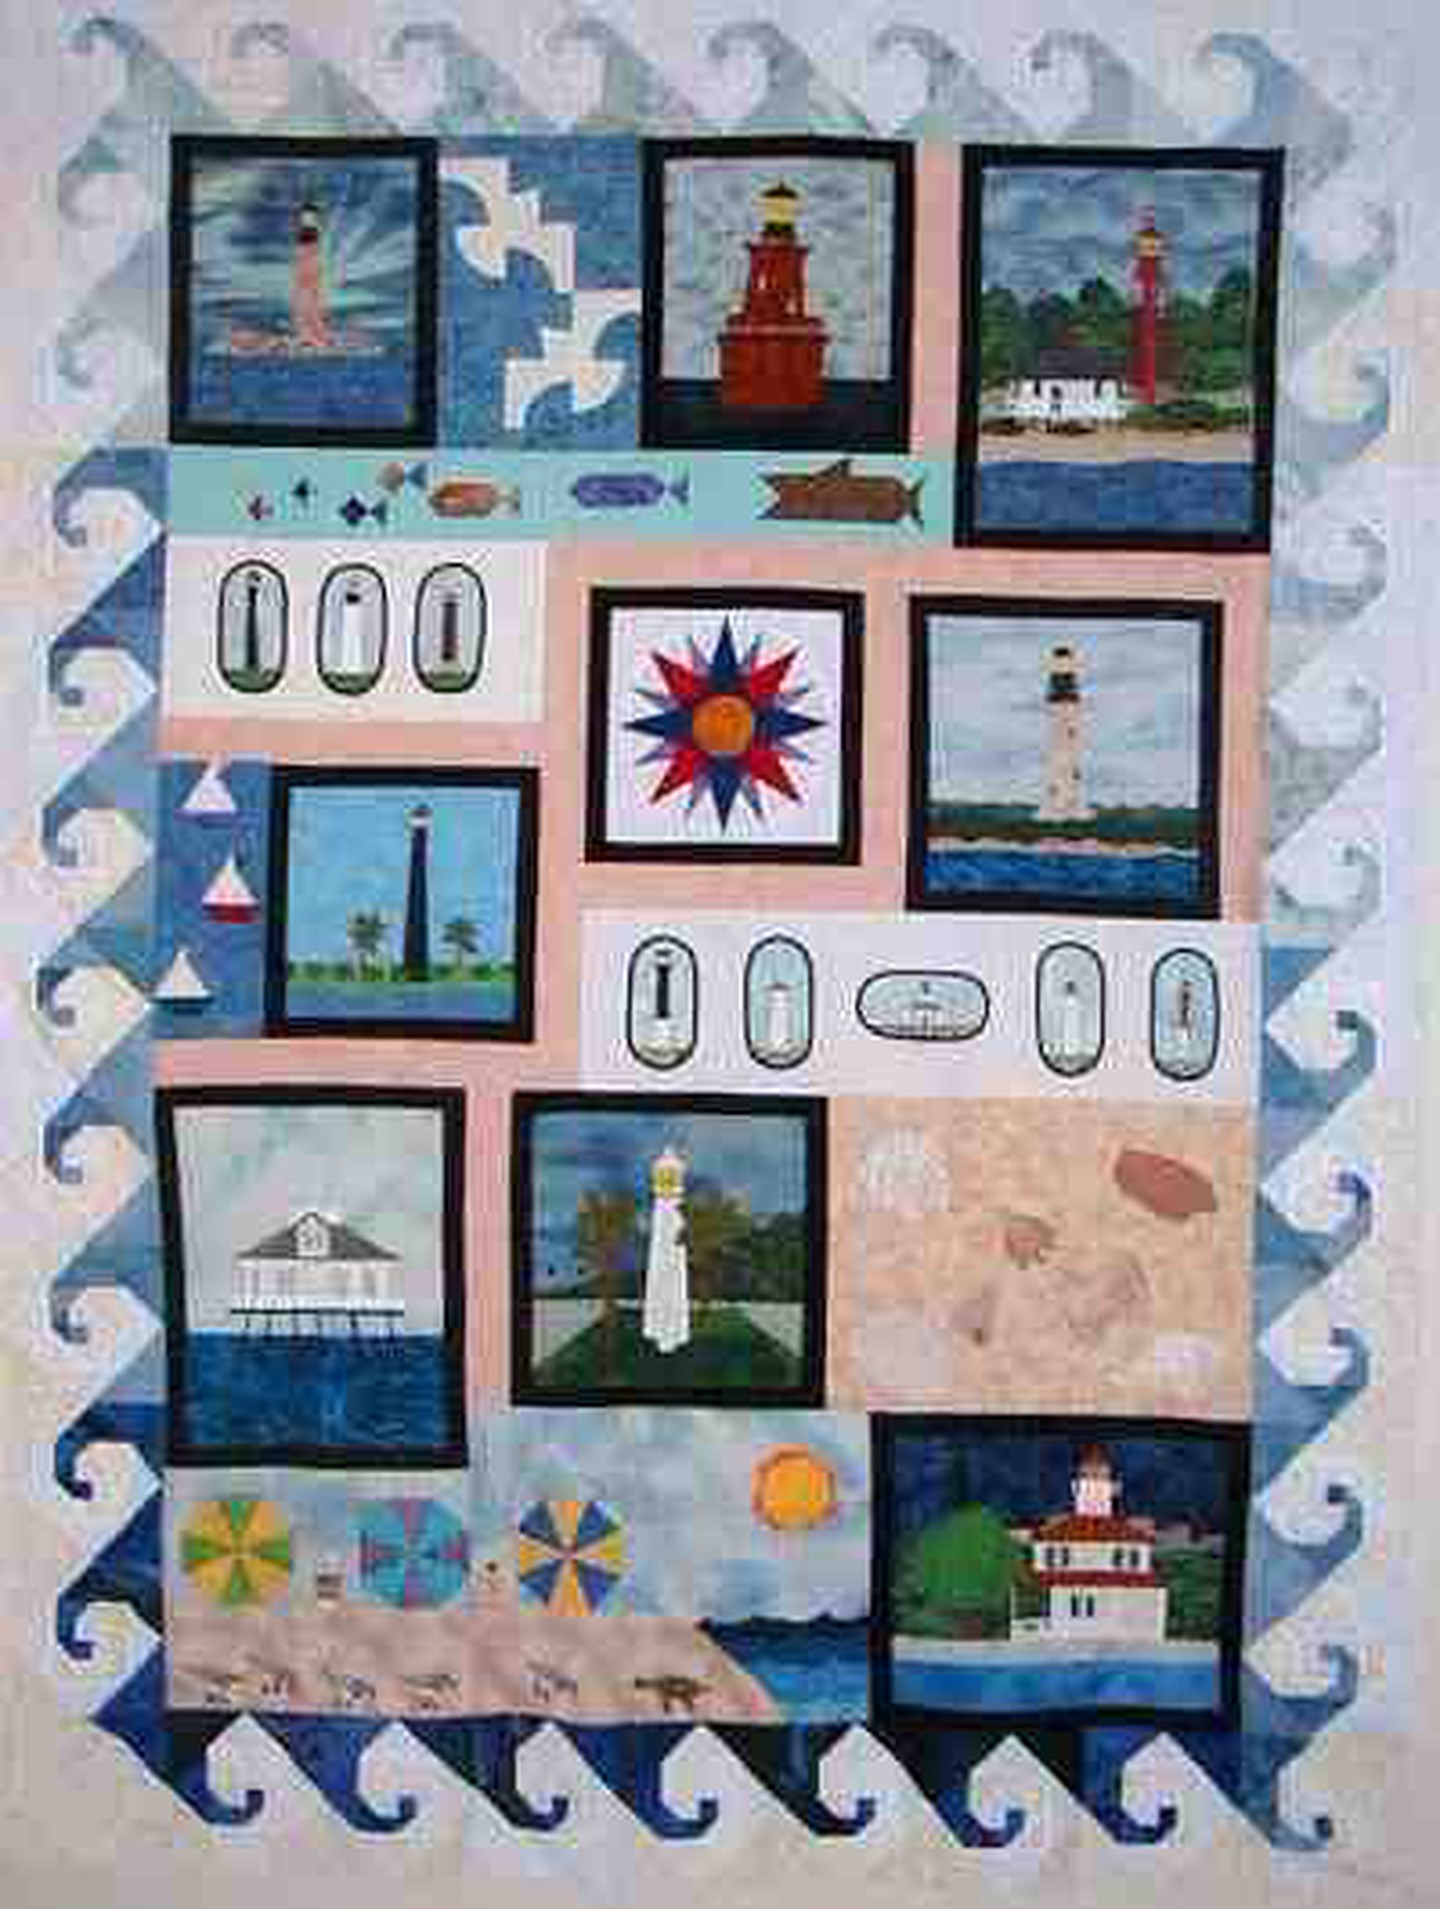 Stephanie Bryant's version of this quilt